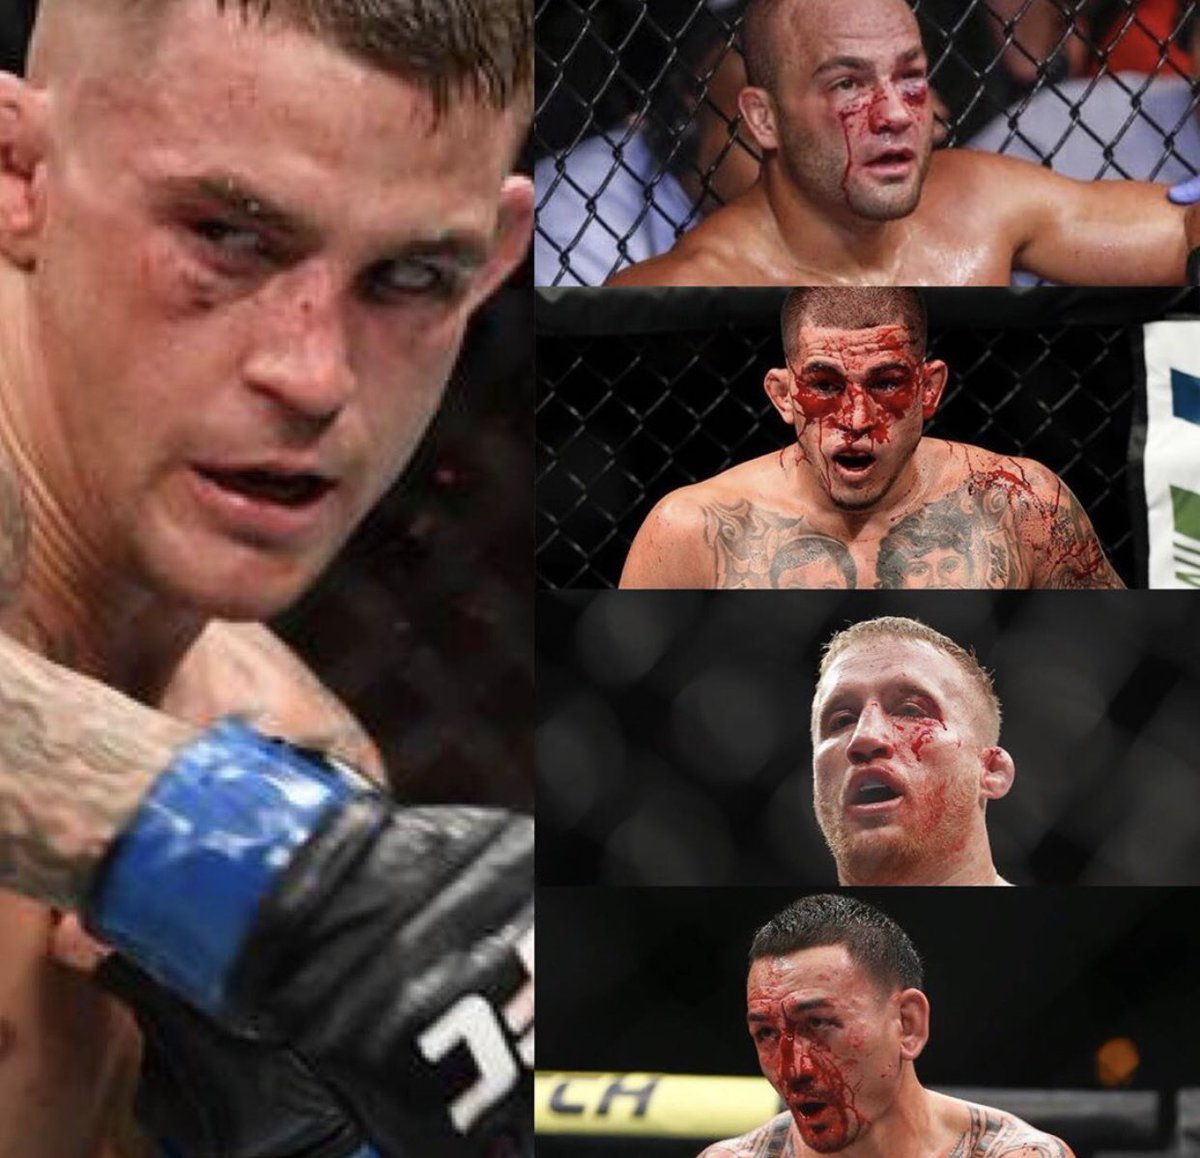 @DustinPoirier is a bad man.  This is what he does to people! These are his last 4 opponents, beat them all up badly!  Will he do the same to Khabib in September?  Comment below if he does the same to Khabib ⬇️.  #UFC #MMA #DustinPoirier #Khabib @mikebrownmma